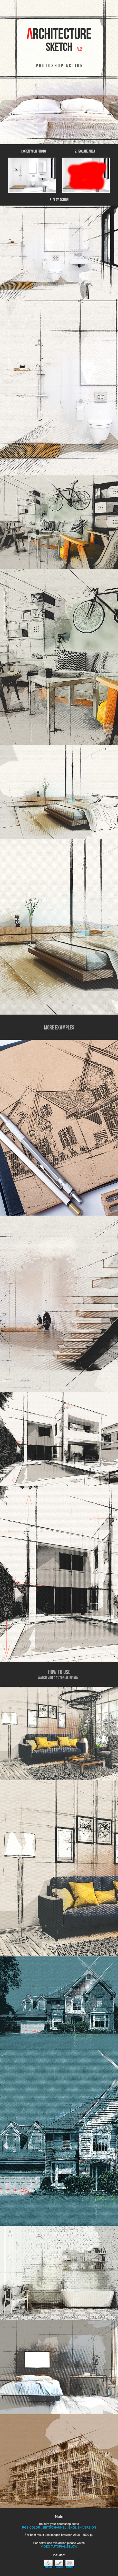 Architecture Sketch v2 - Photoshop Action - Photo Effects Actions